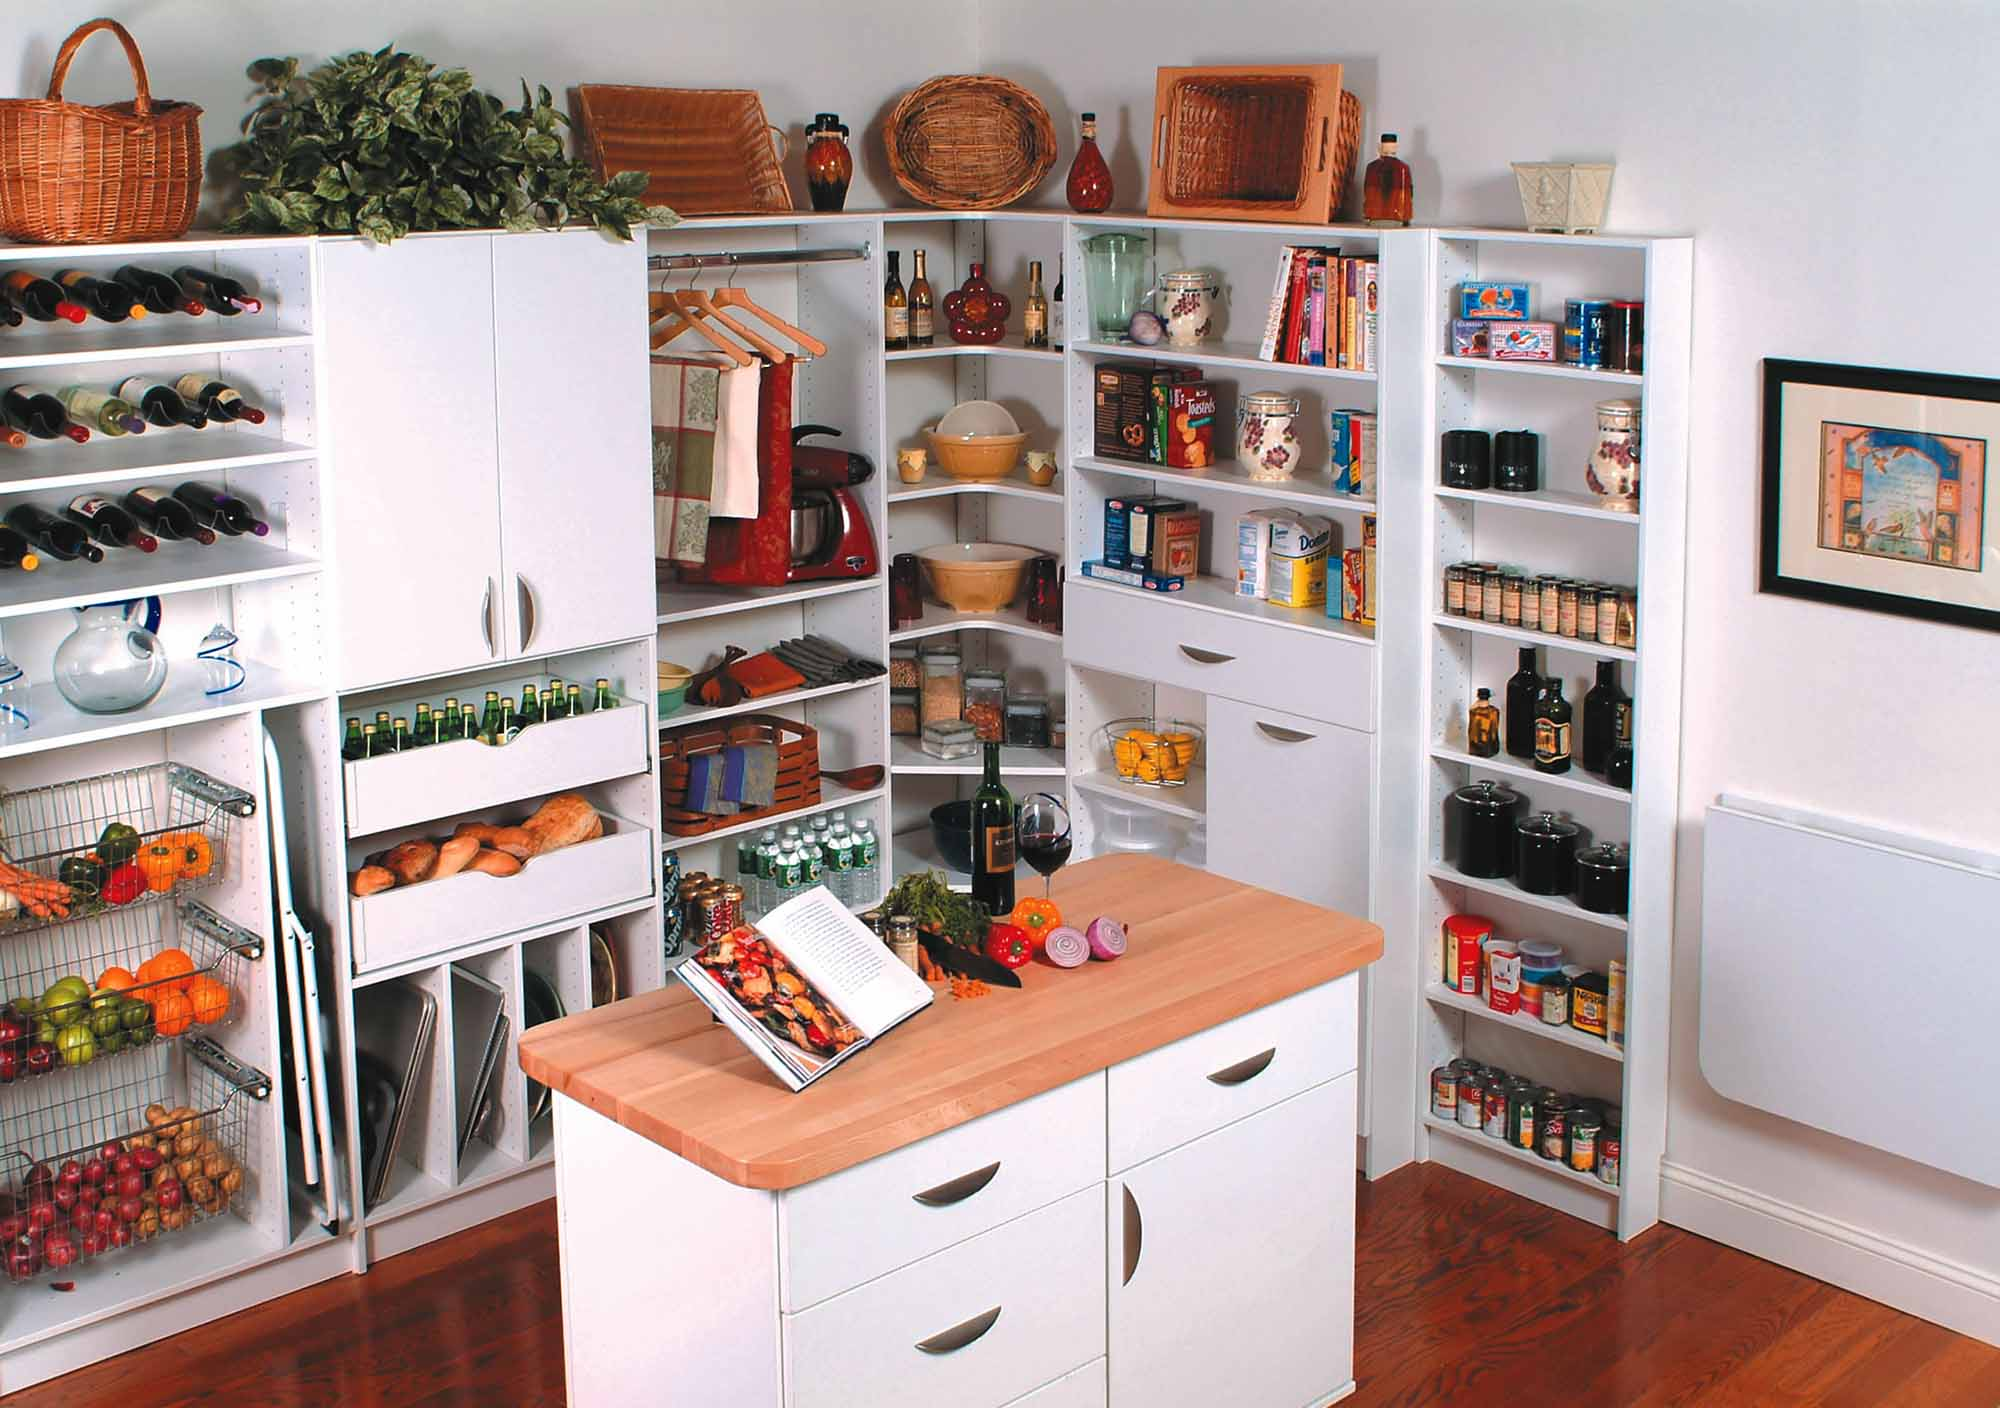 Organized walk-in pantry with center island